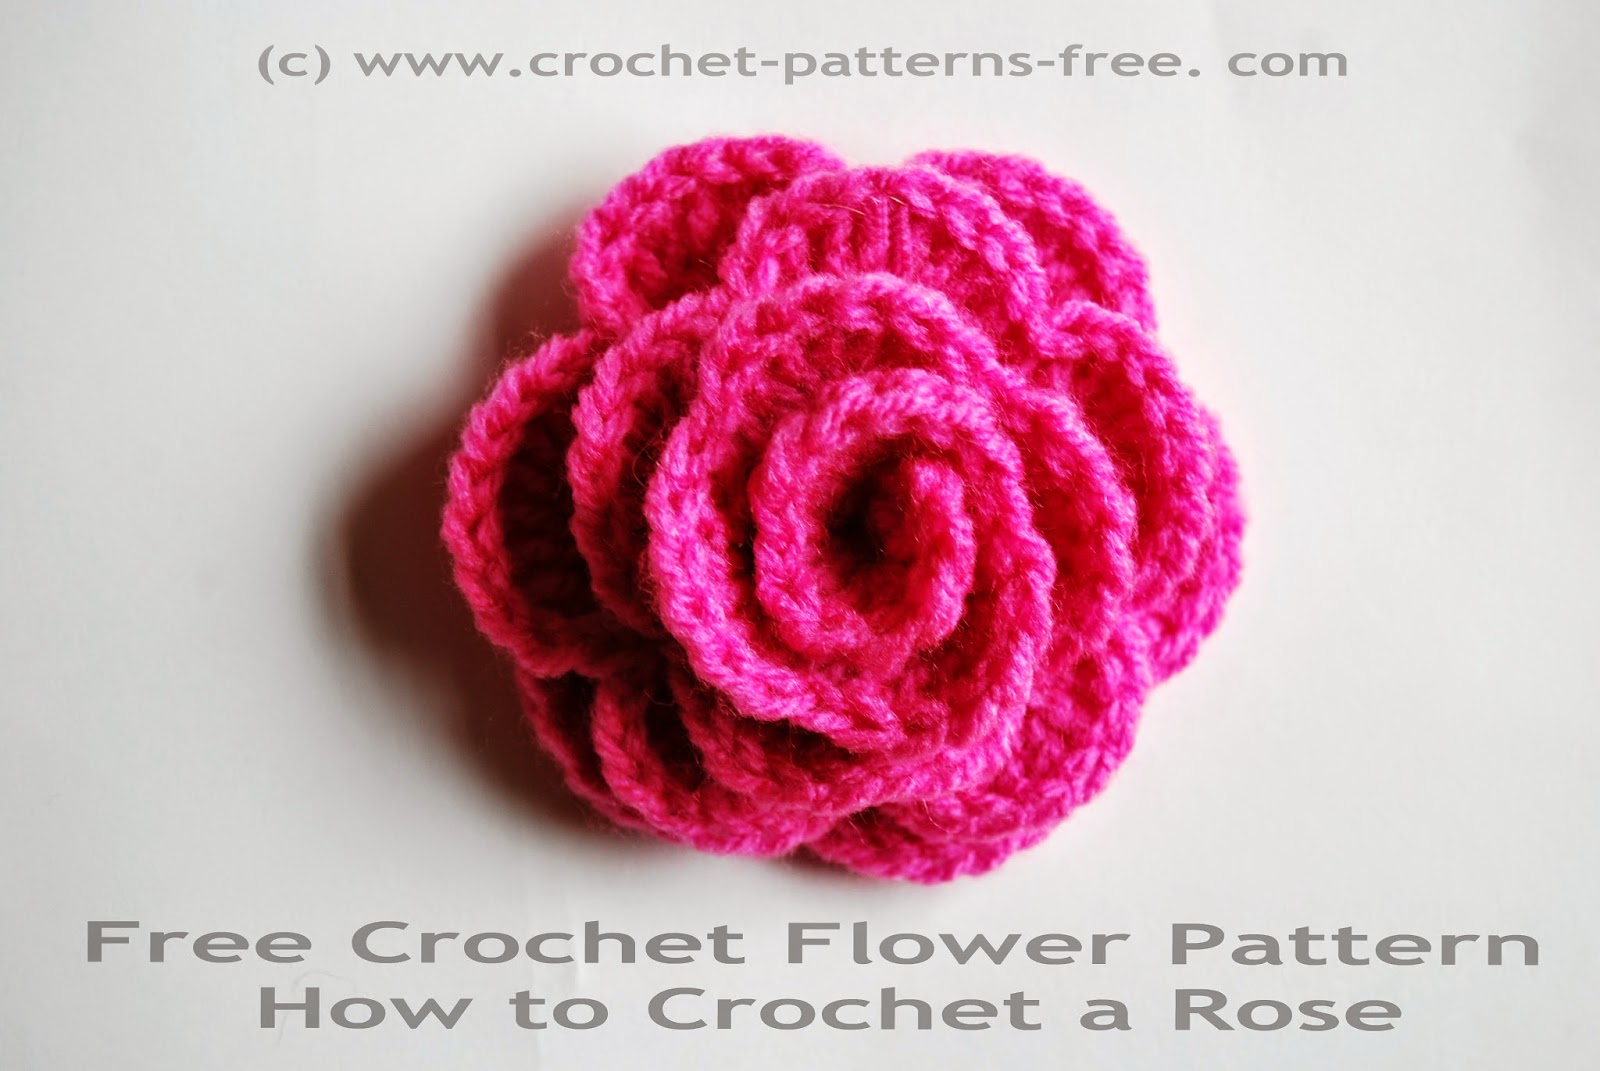 Find Free Crochet Patterns Online : crochet free crochet patterns, how to crochet, crochet